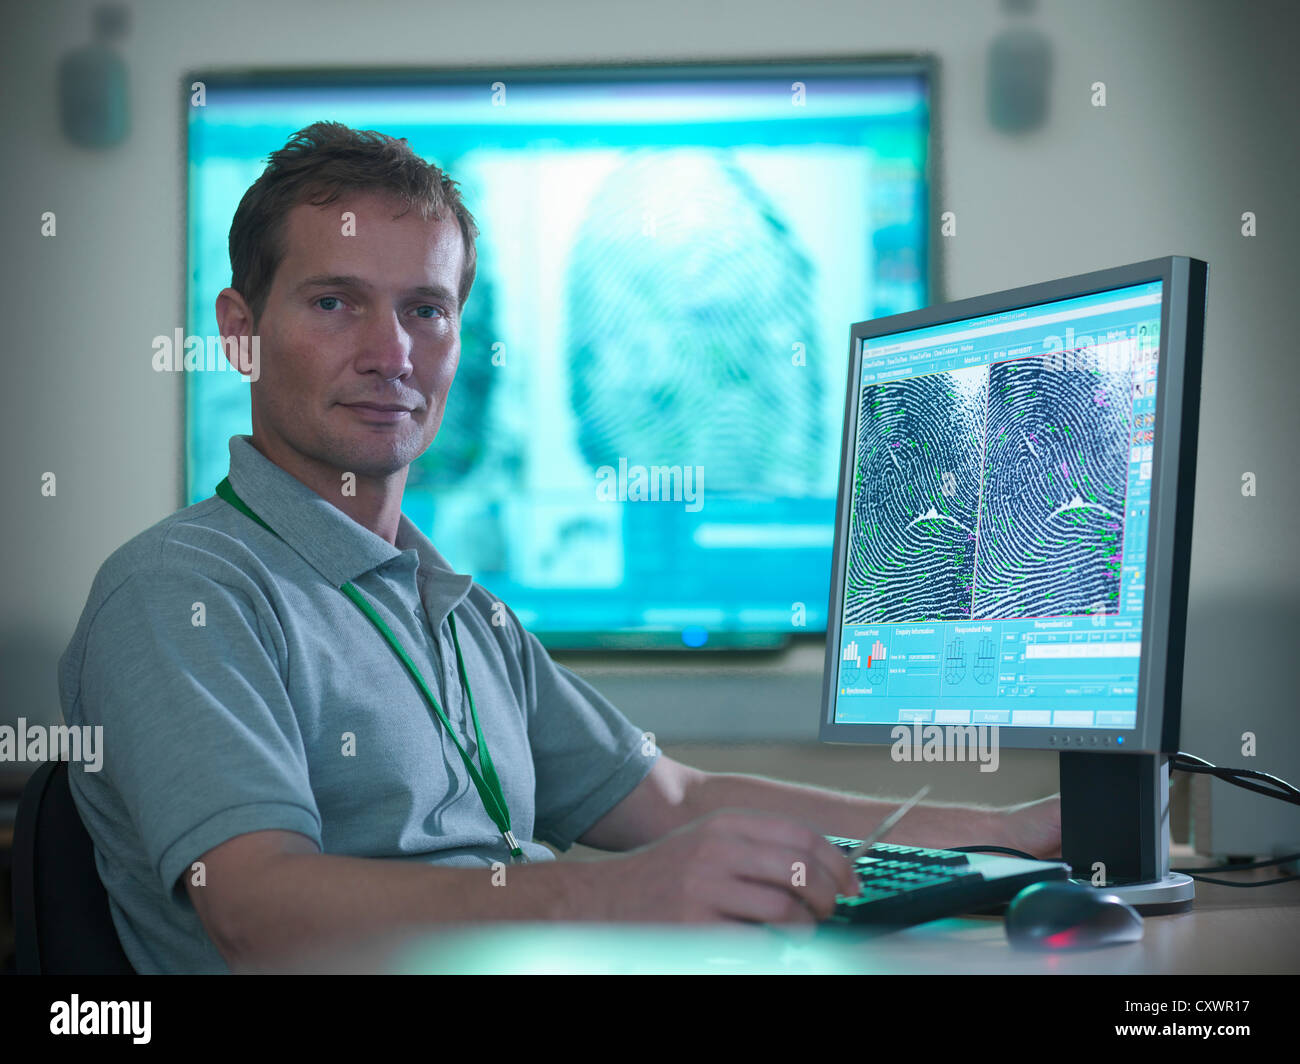 Forensic scientist at computer desk - Stock Image